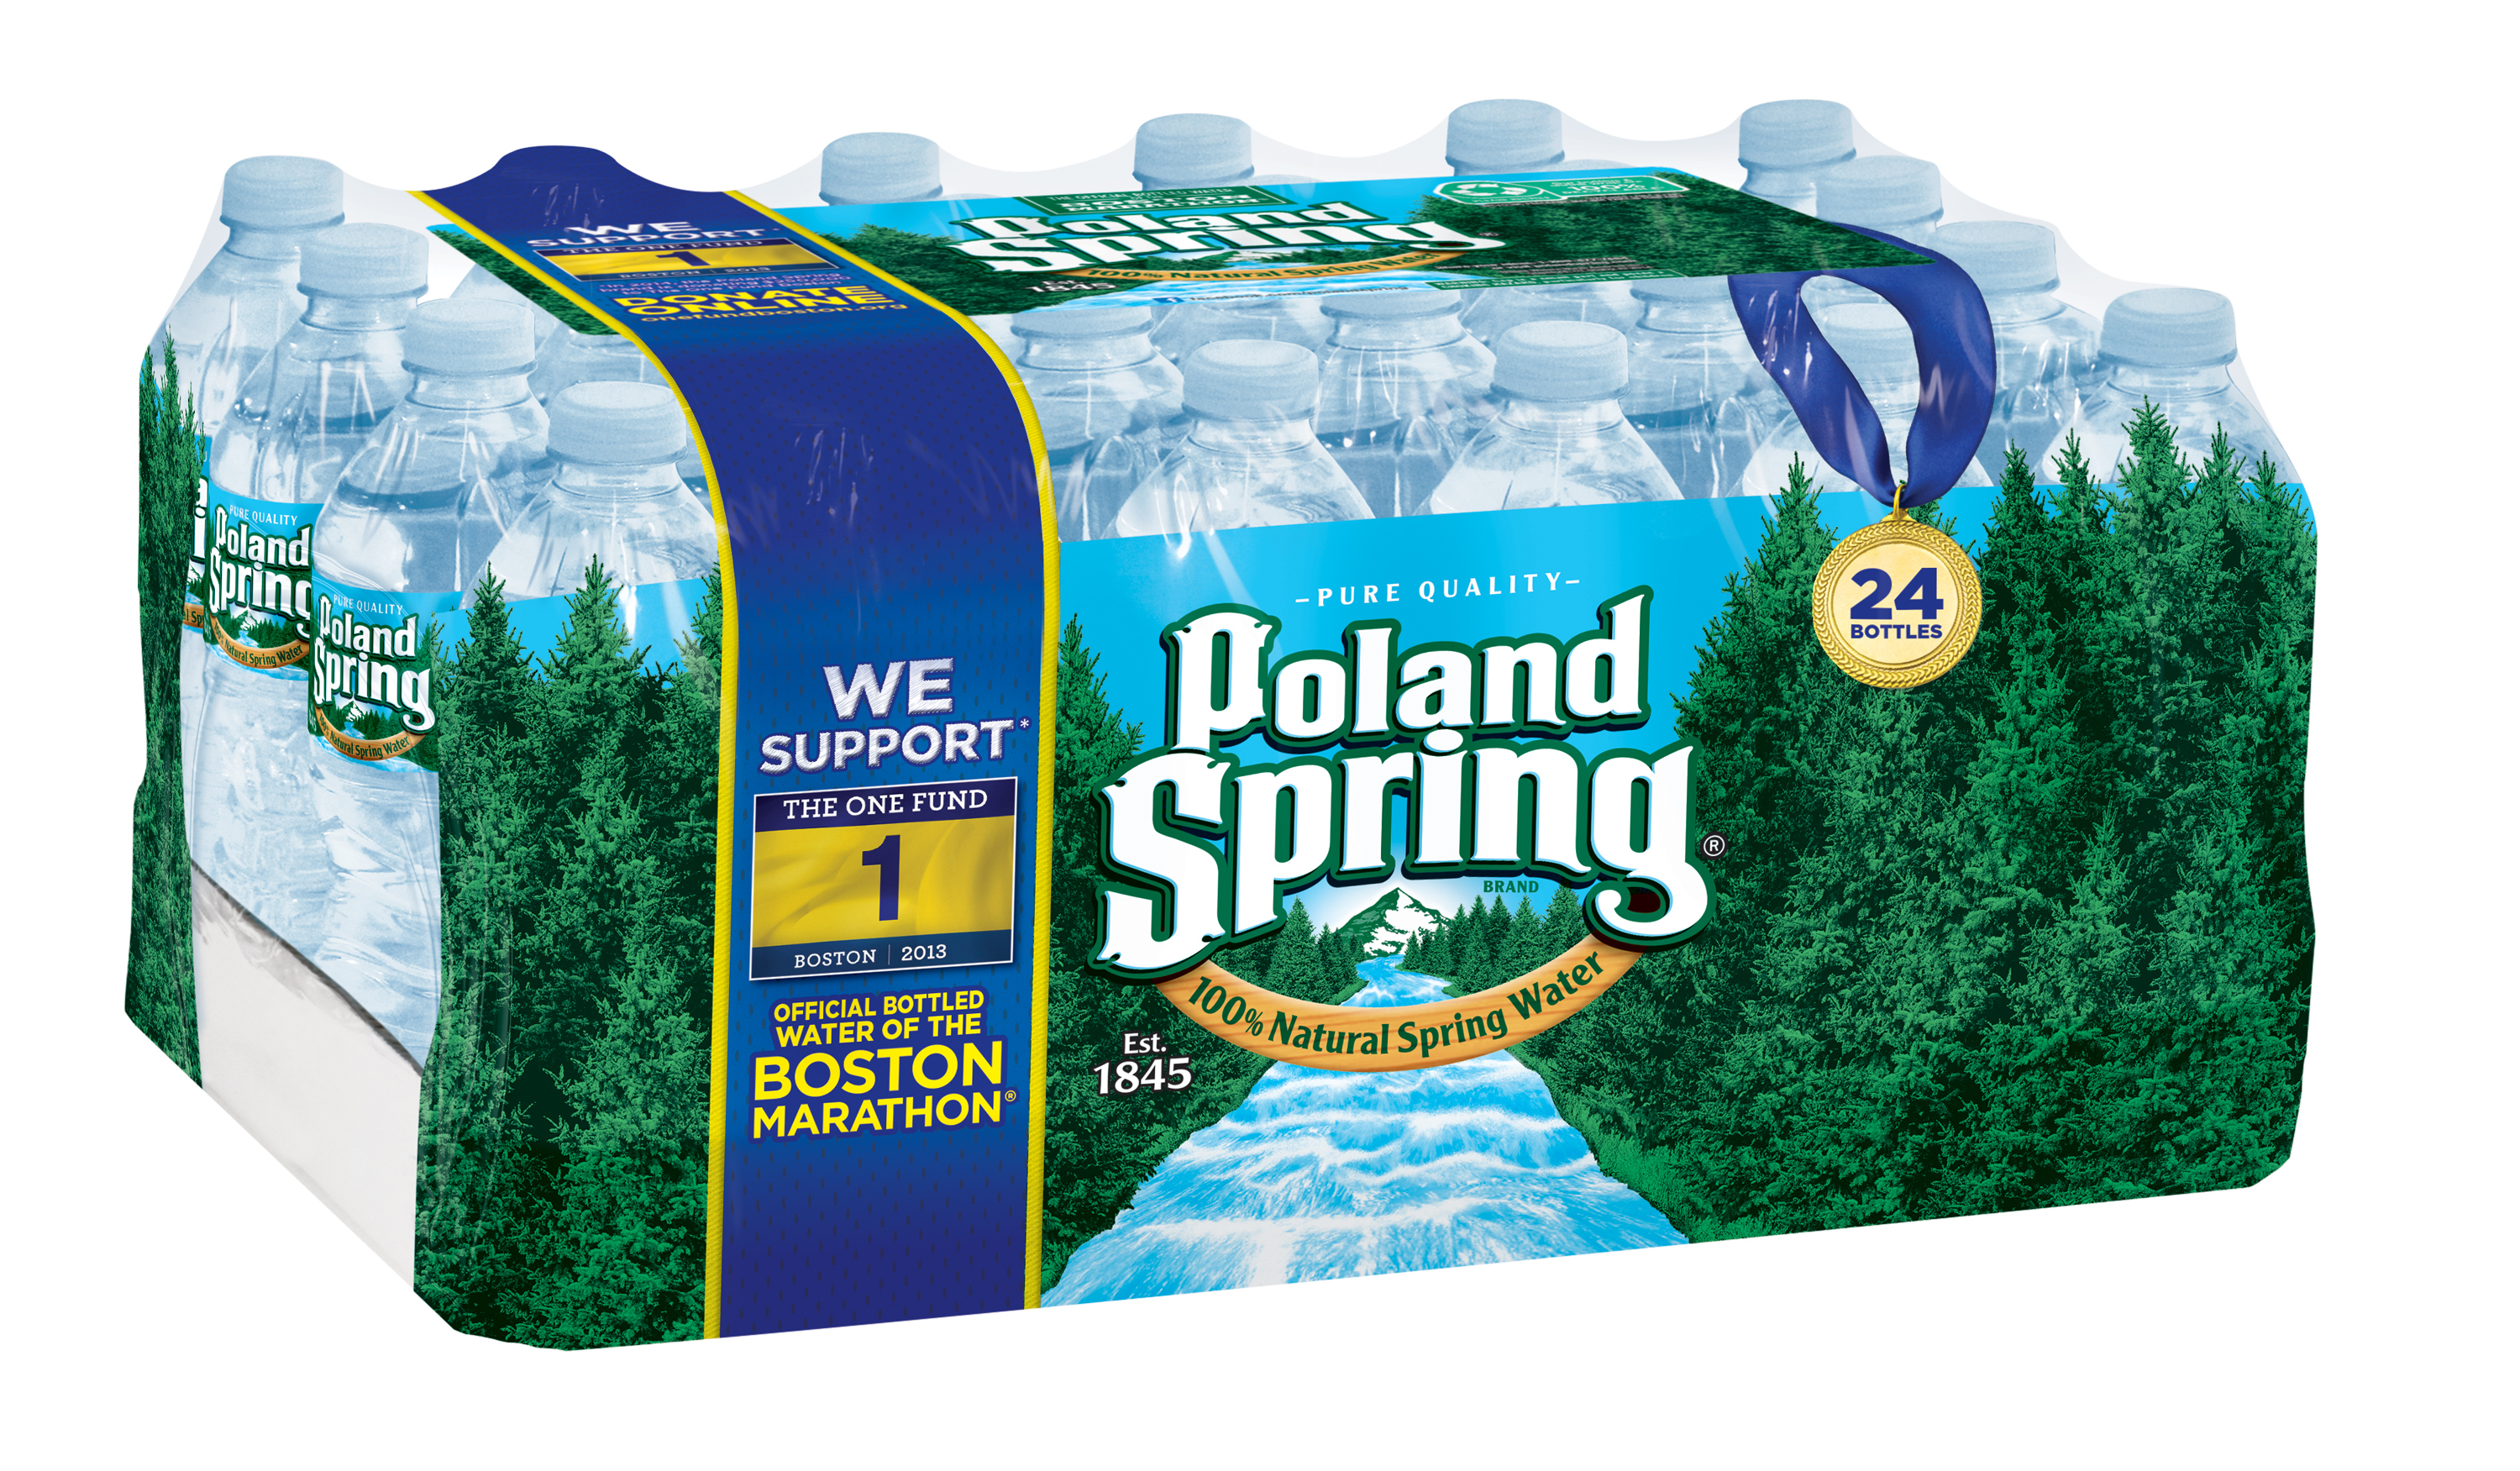 Poland Spring® 100% Natural Spring Water announced it will donate $250,000 to One Fund Boston in continued support to help meet the significant ongoing needs of the survivor community. Limited-edition bottles, available throughout New England, will feature the One Fund Boston logo and packaging will encourage consumers to join Poland Spring in supporting the organization by making donations of their own. (Photo: Business Wire)